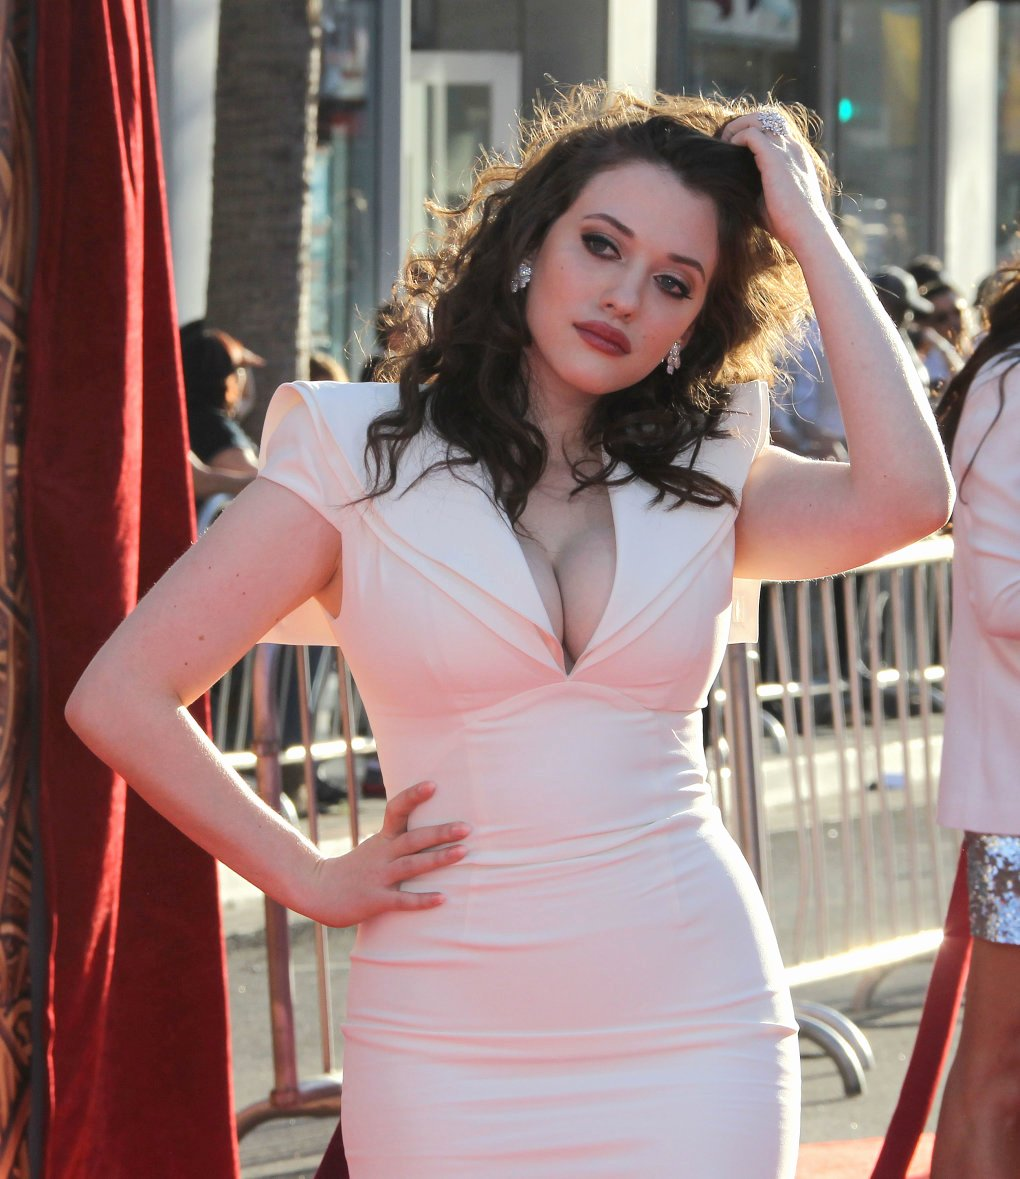 Pics Of Sexy Women Unique Y and Hot Kat Dennings S Barnorama